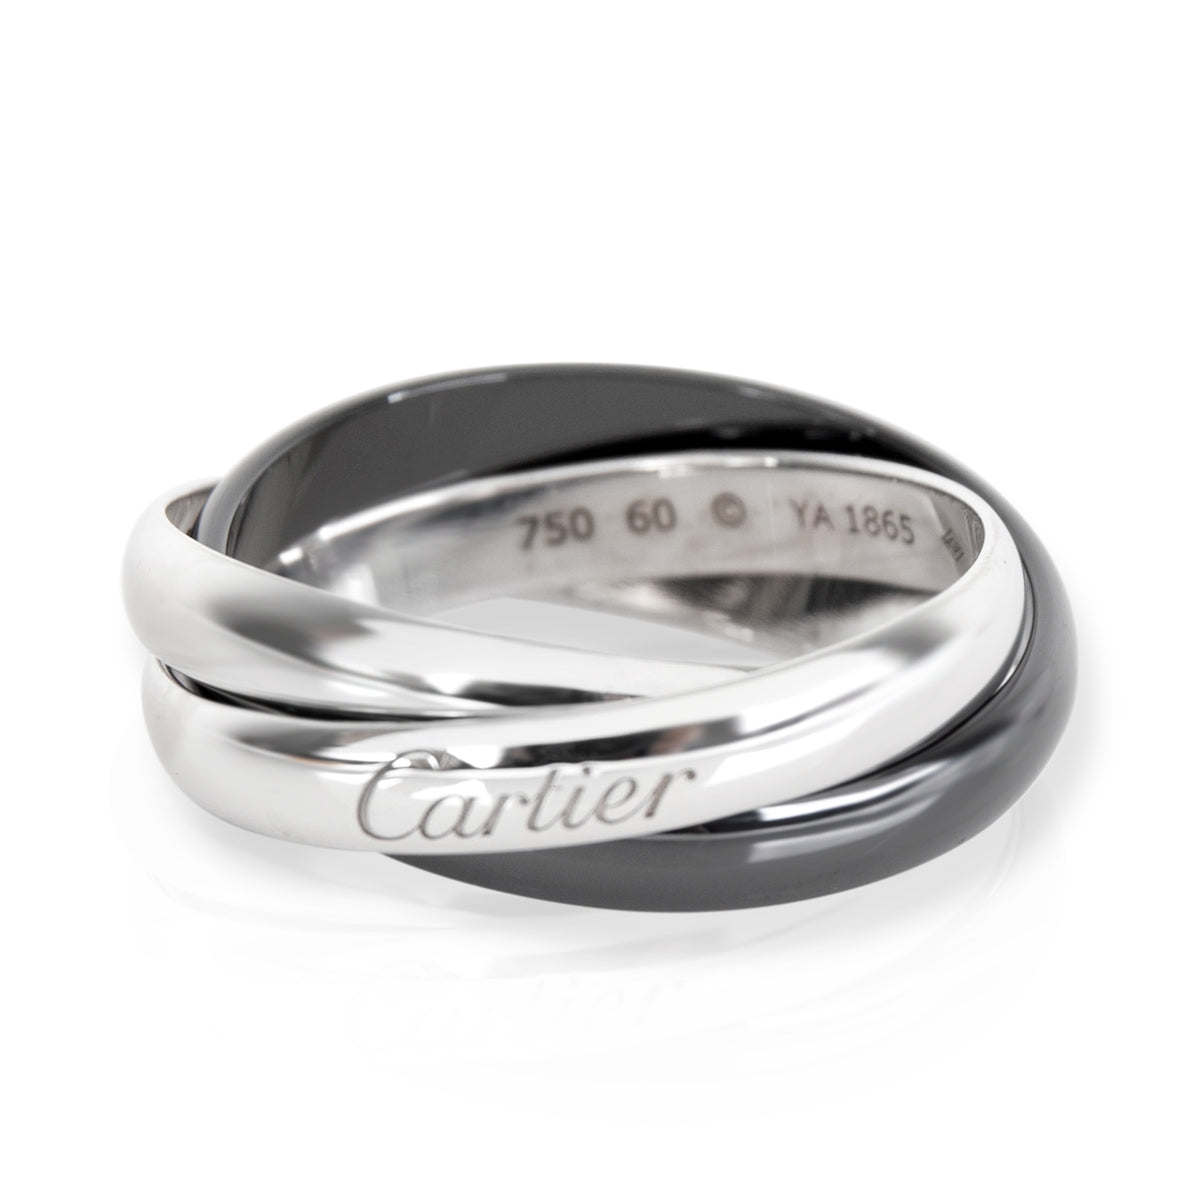 Cartier Trinity Ceramic Band in 18K White Gold